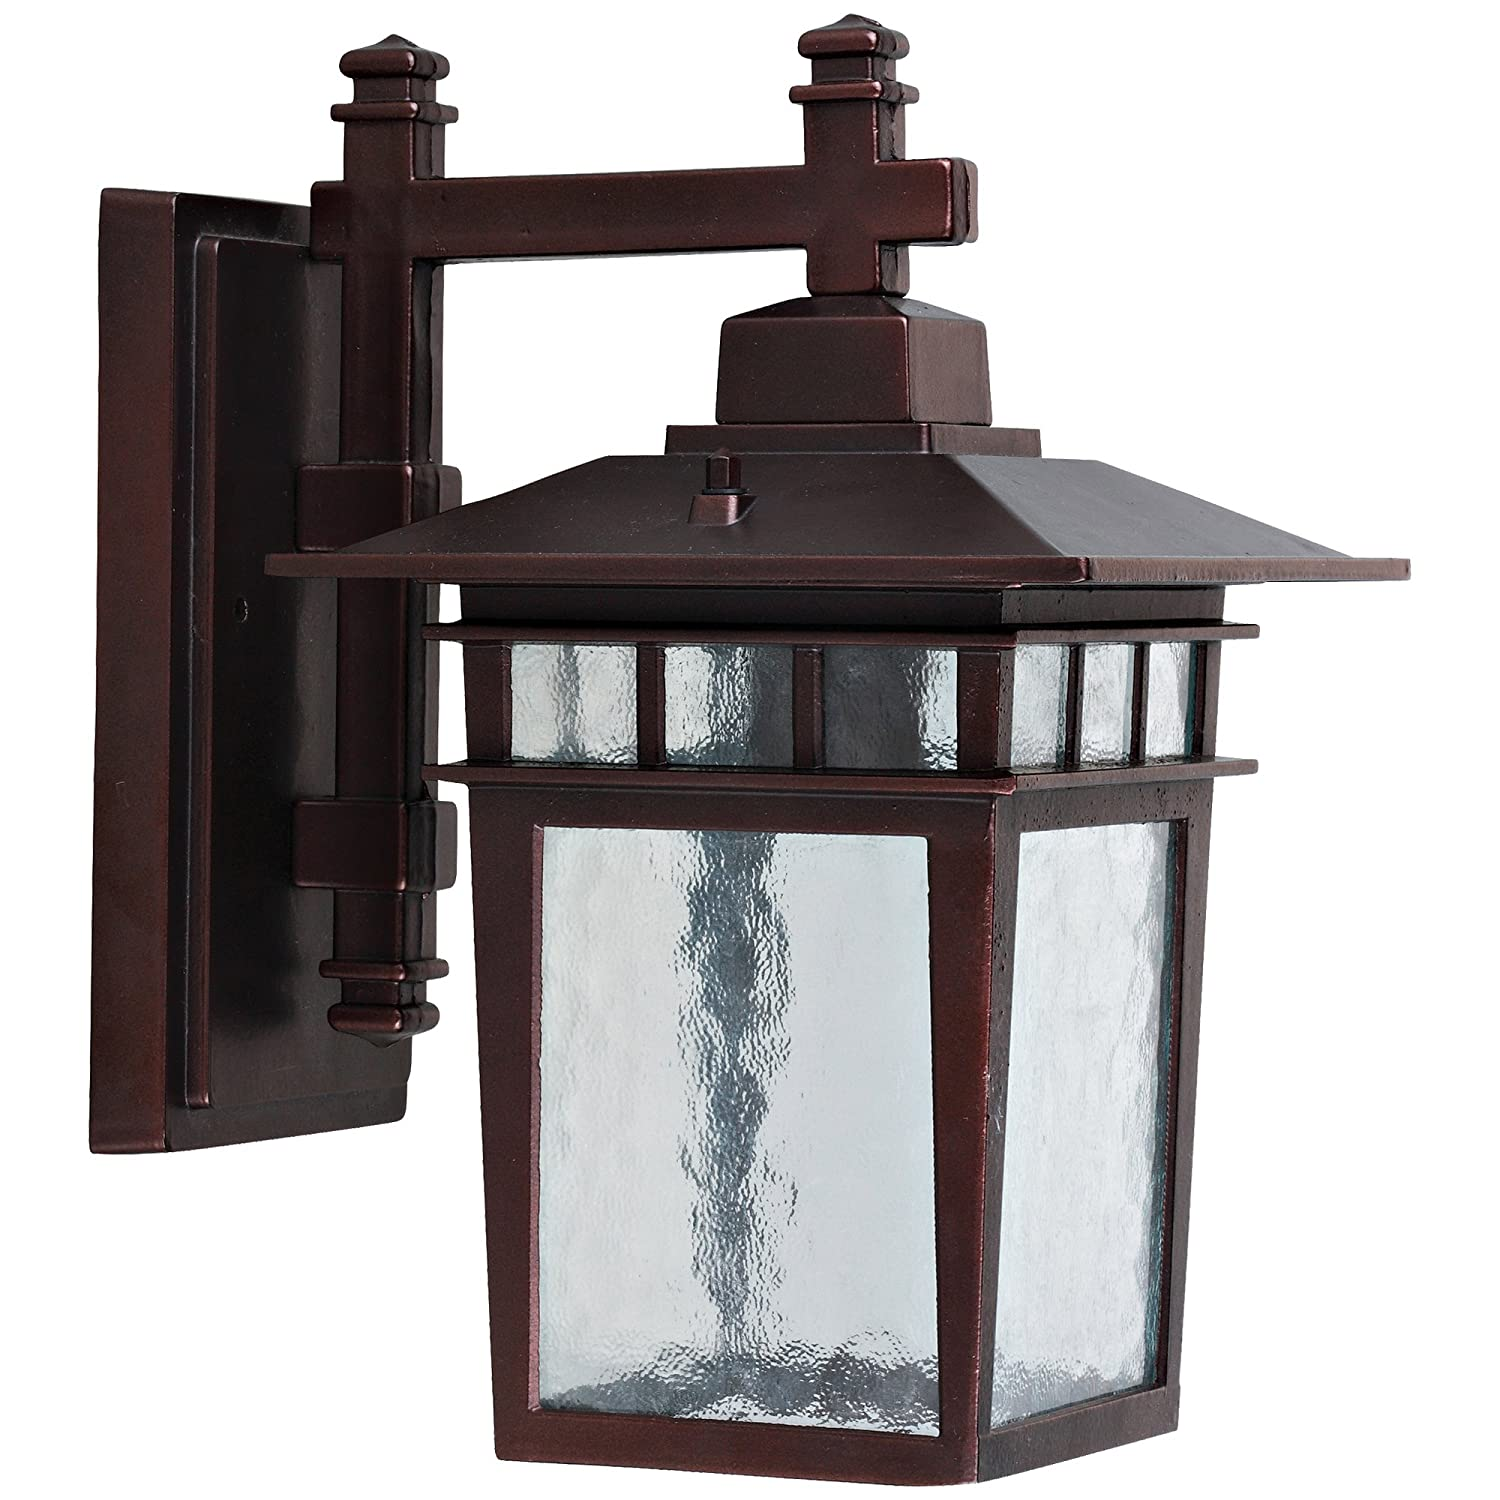 Yosemite Home Decor 2072SDIORB Dante 1-Light Exterior Wall Sconce ...